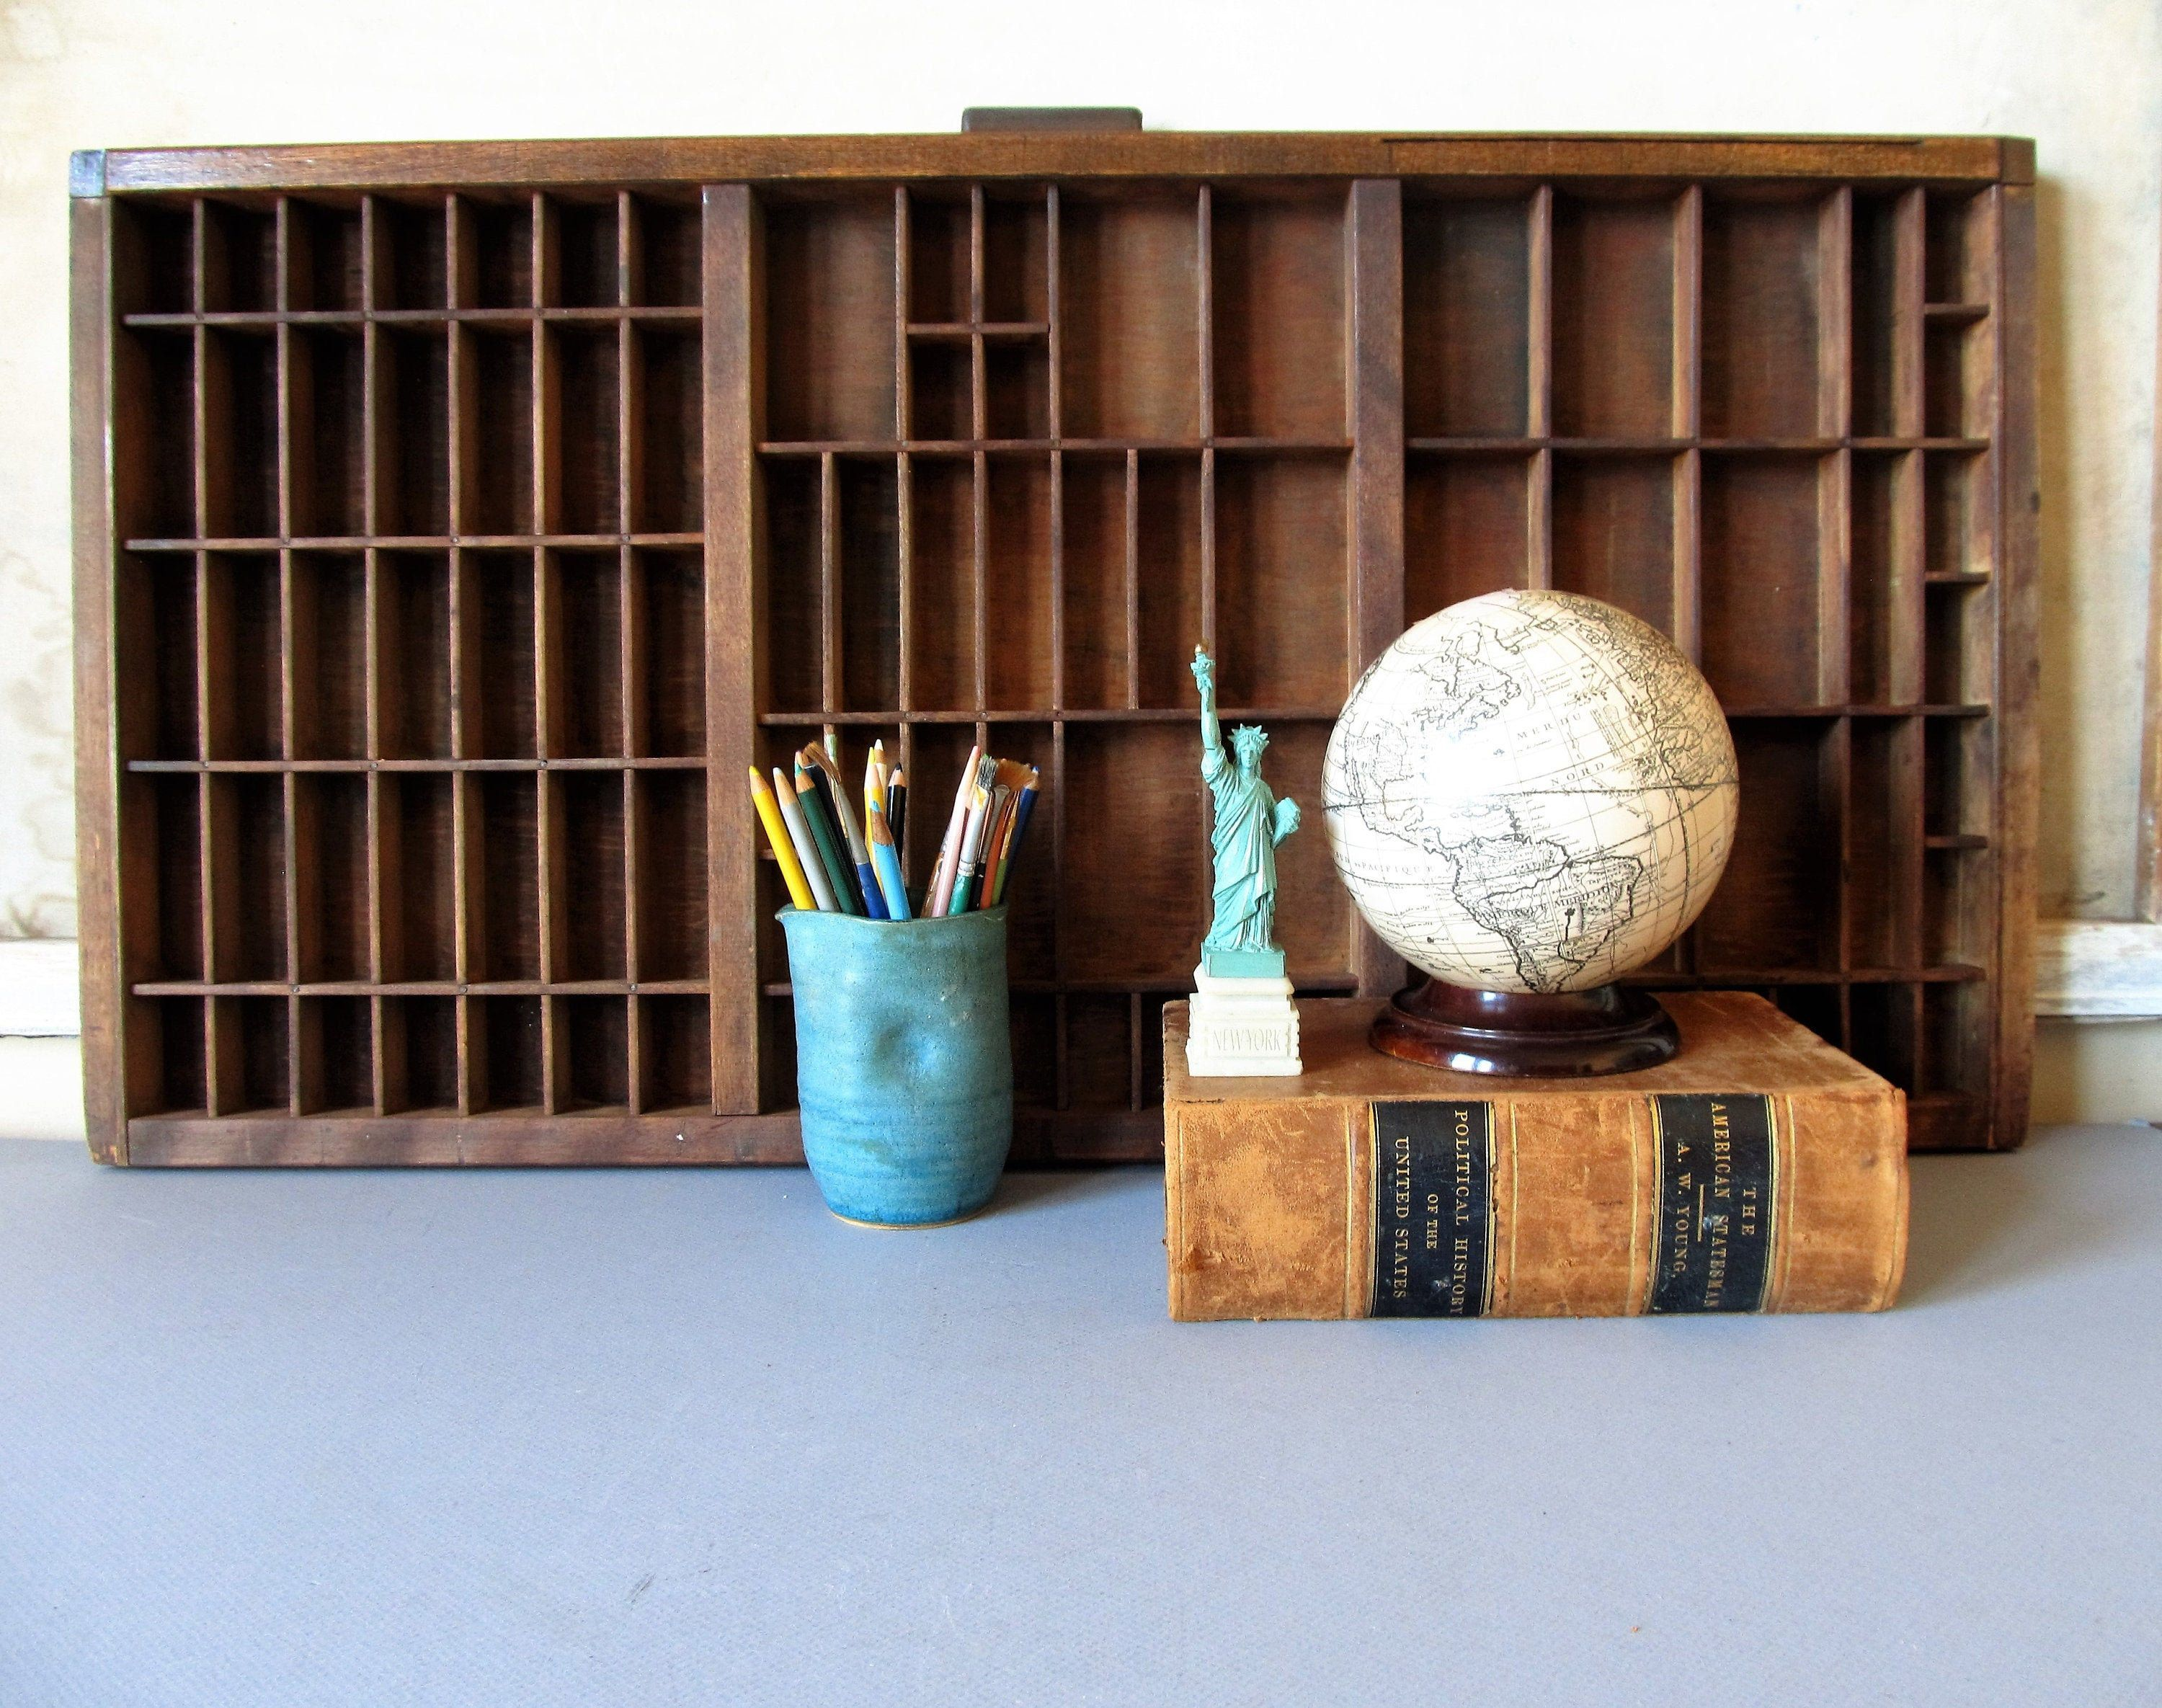 Vintage printers drawer, printers tray, industrial decor, display case. #printerstray Vintage printers drawer, printers tray, industrial decor, display case. #printerstray